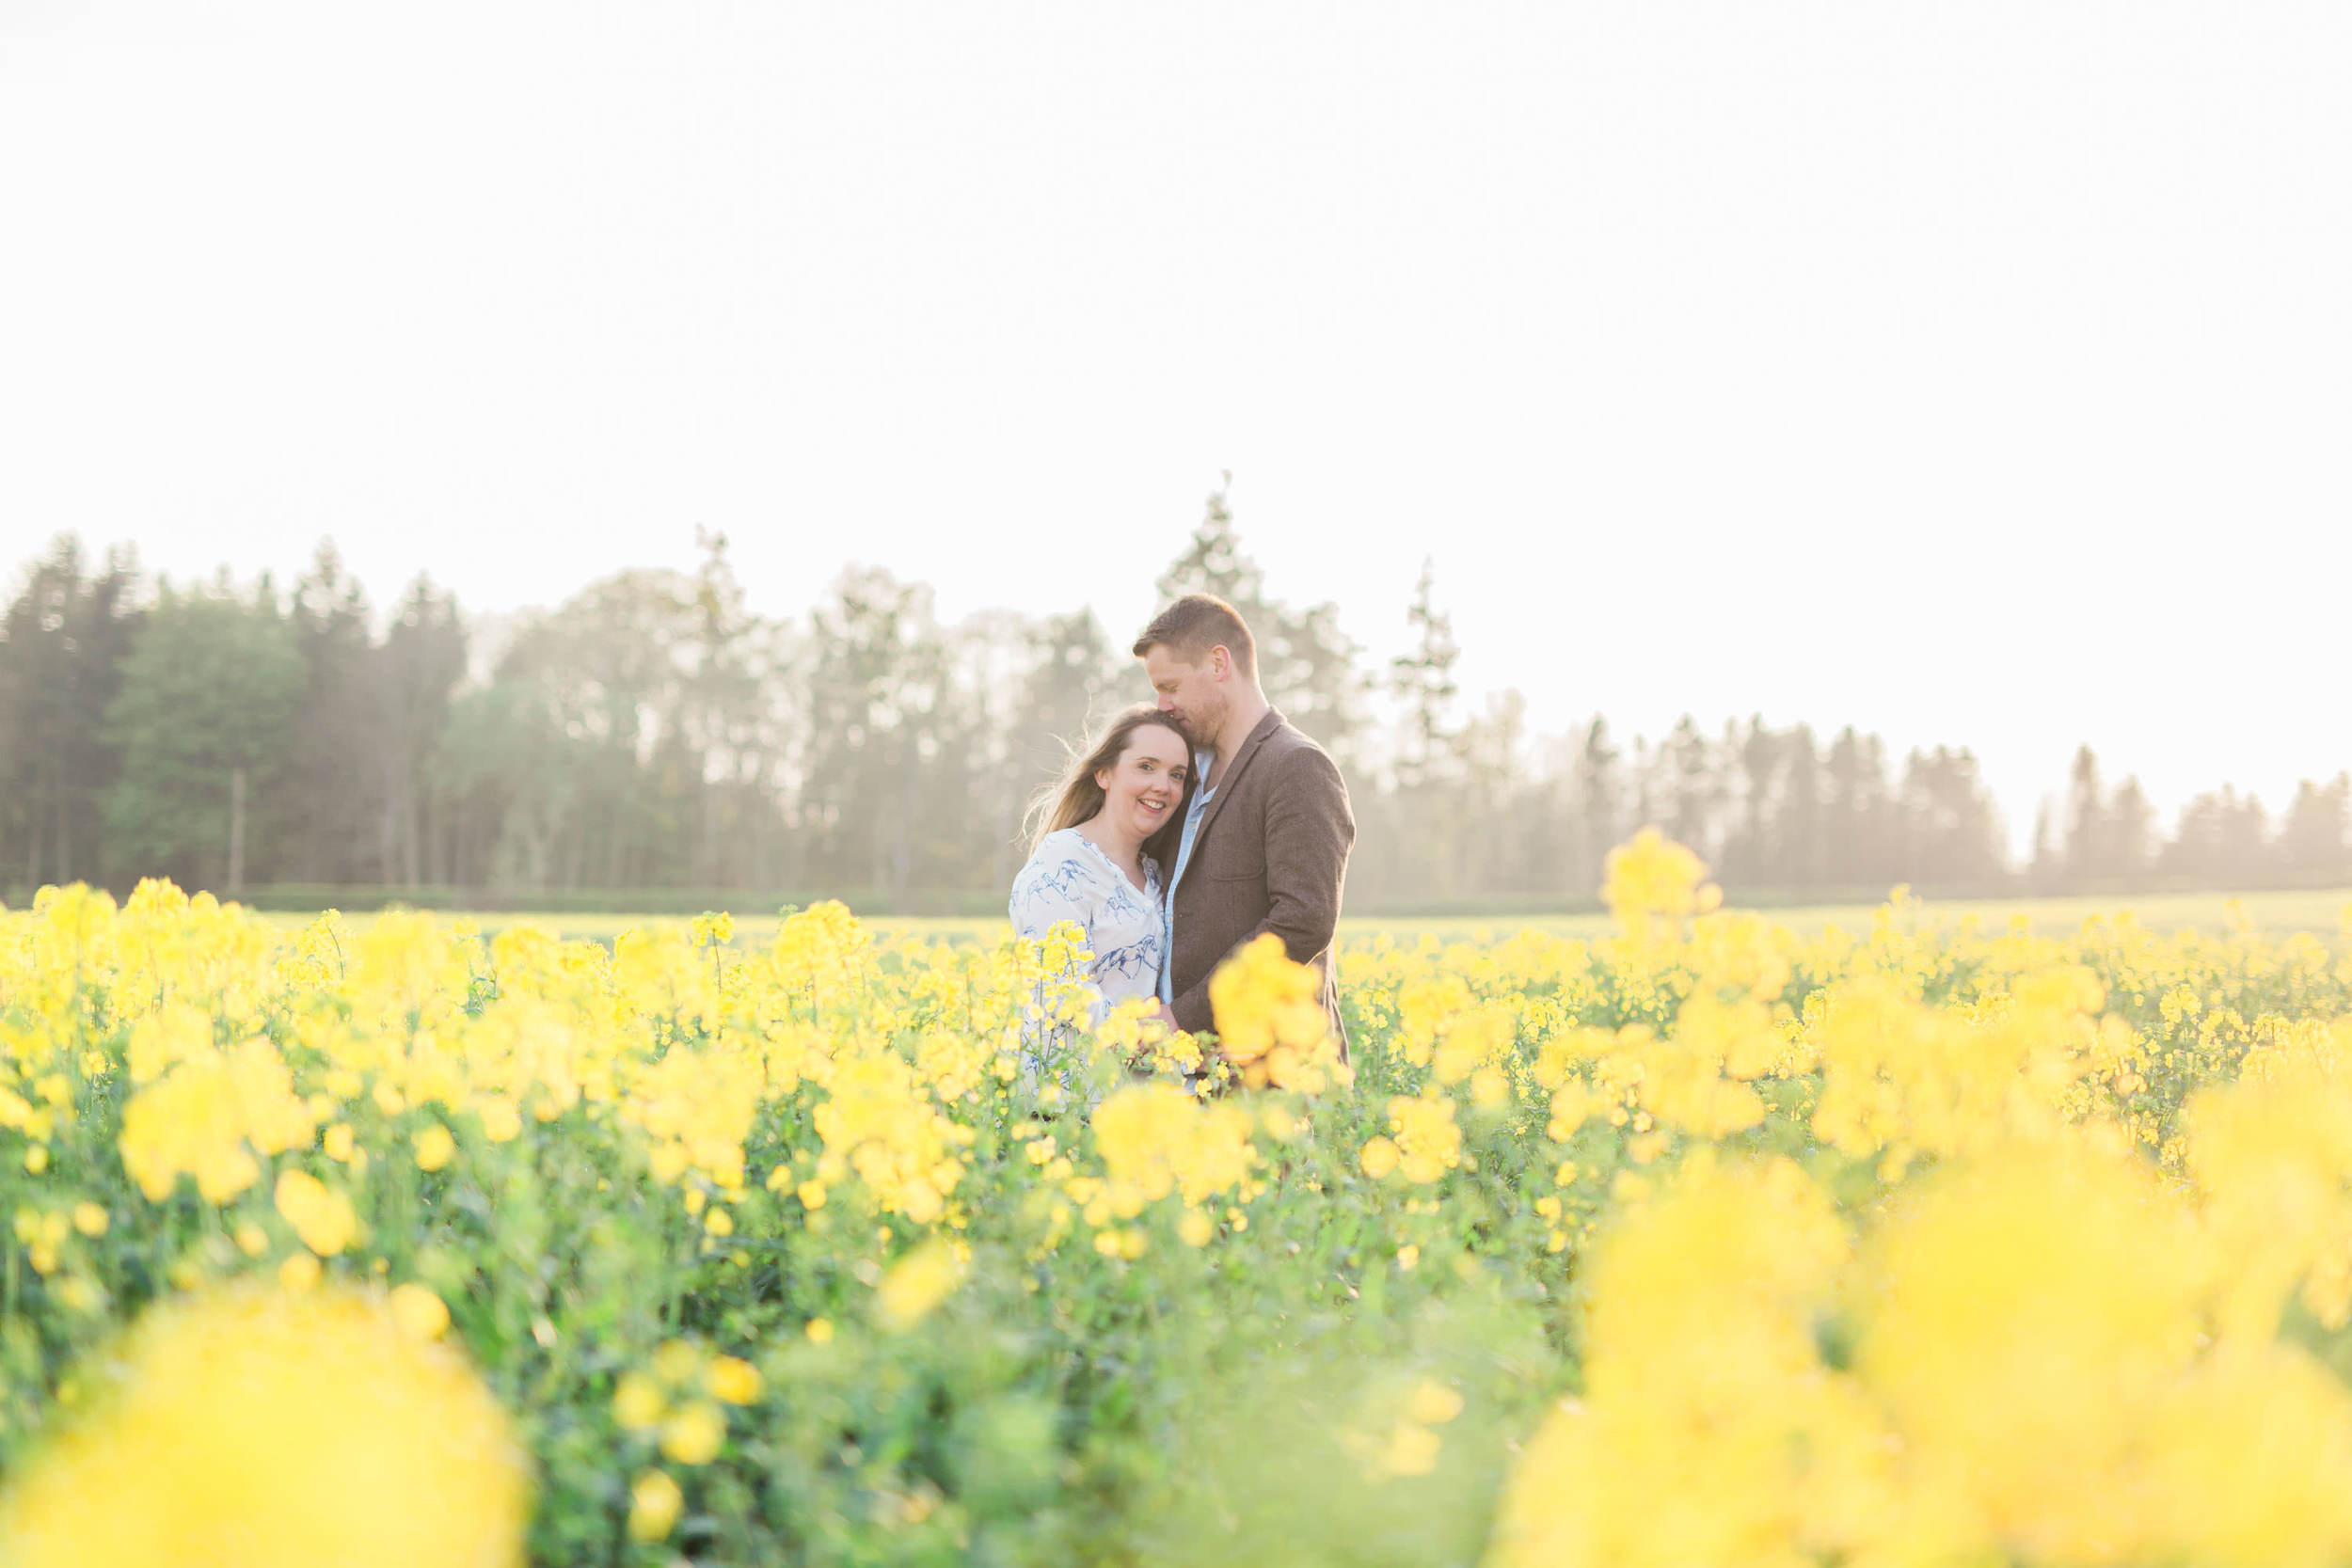 suzanne_li_photography_rowanpaul_engagement-95.jpg